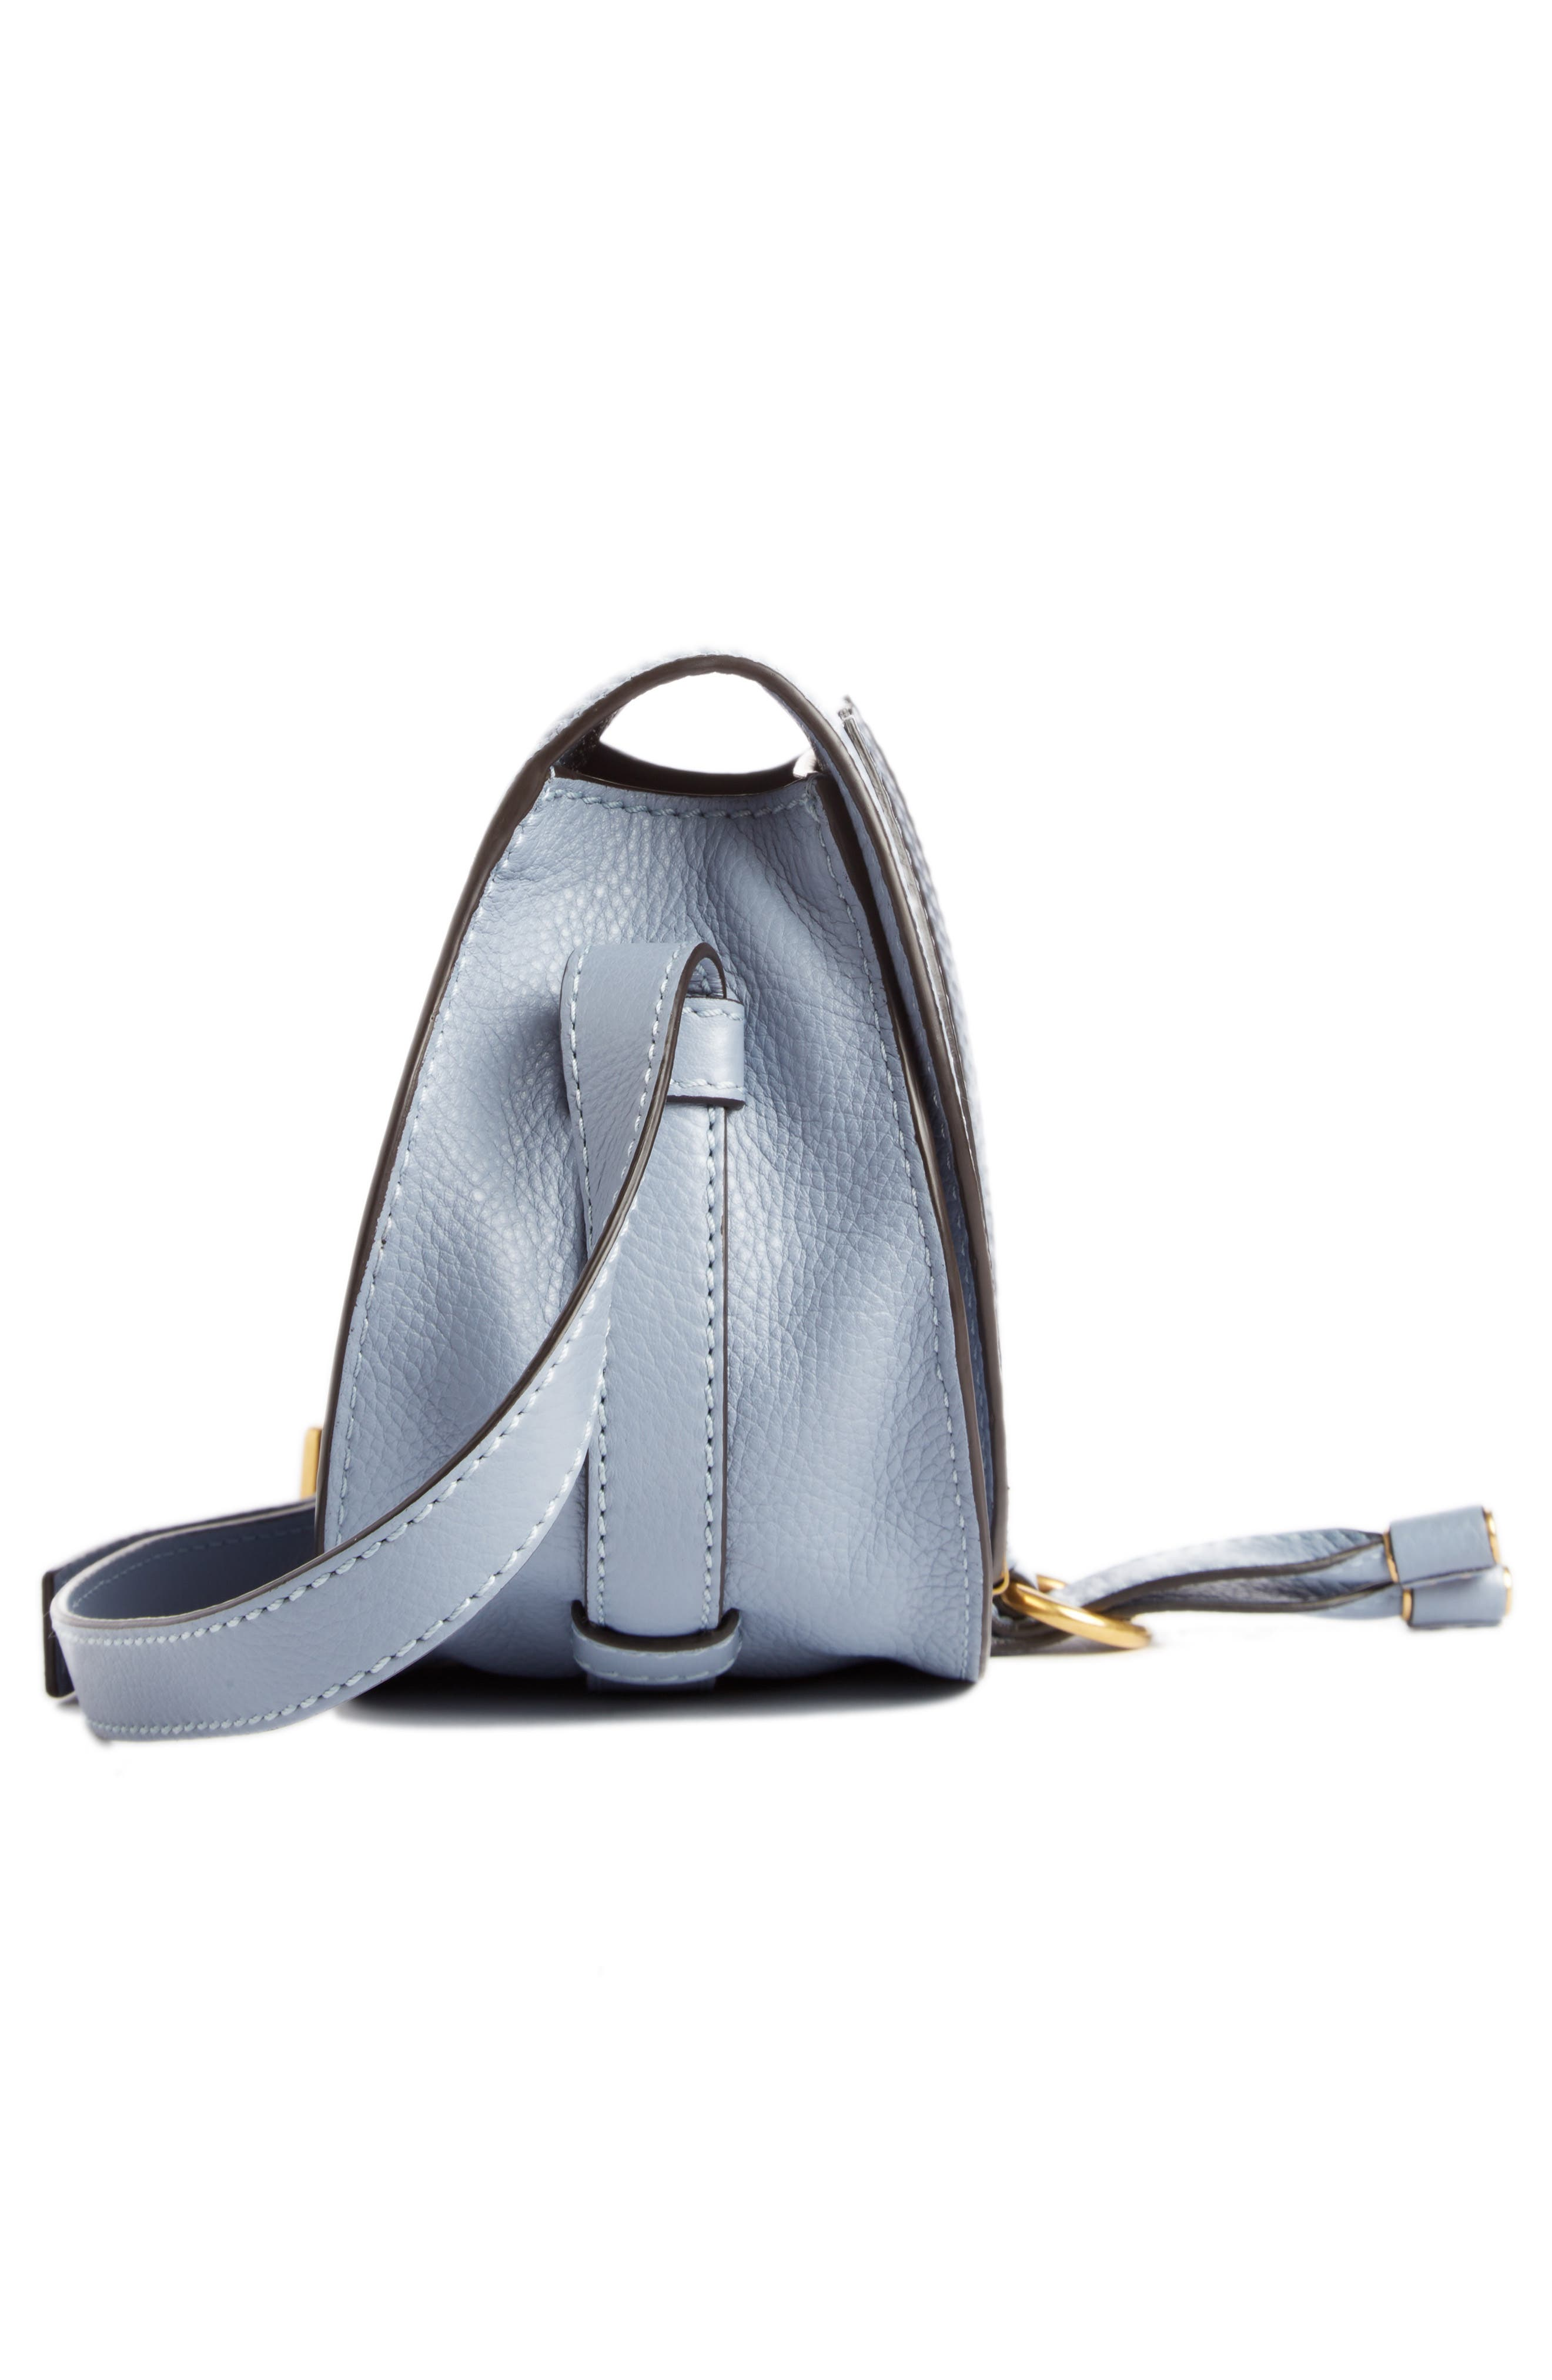 'Mini Marcie' Leather Crossbody Bag,                             Alternate thumbnail 4, color,                             Washed Blue